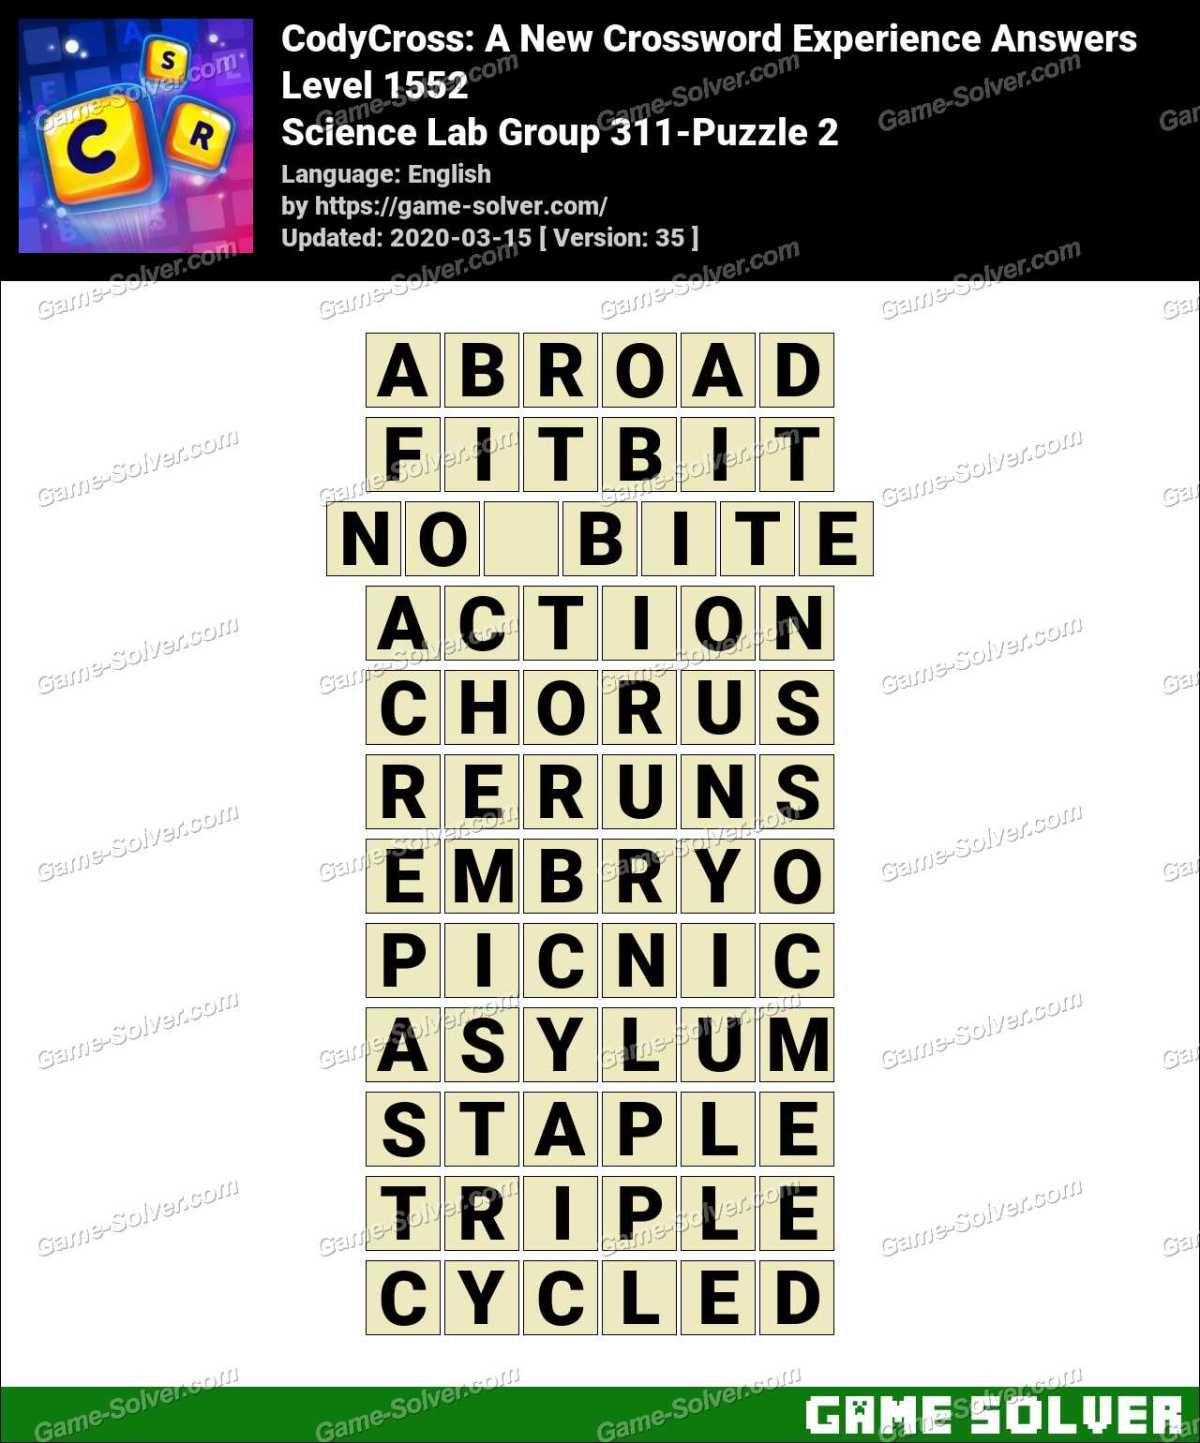 CodyCross Science Lab Group 311-Puzzle 2 Answers